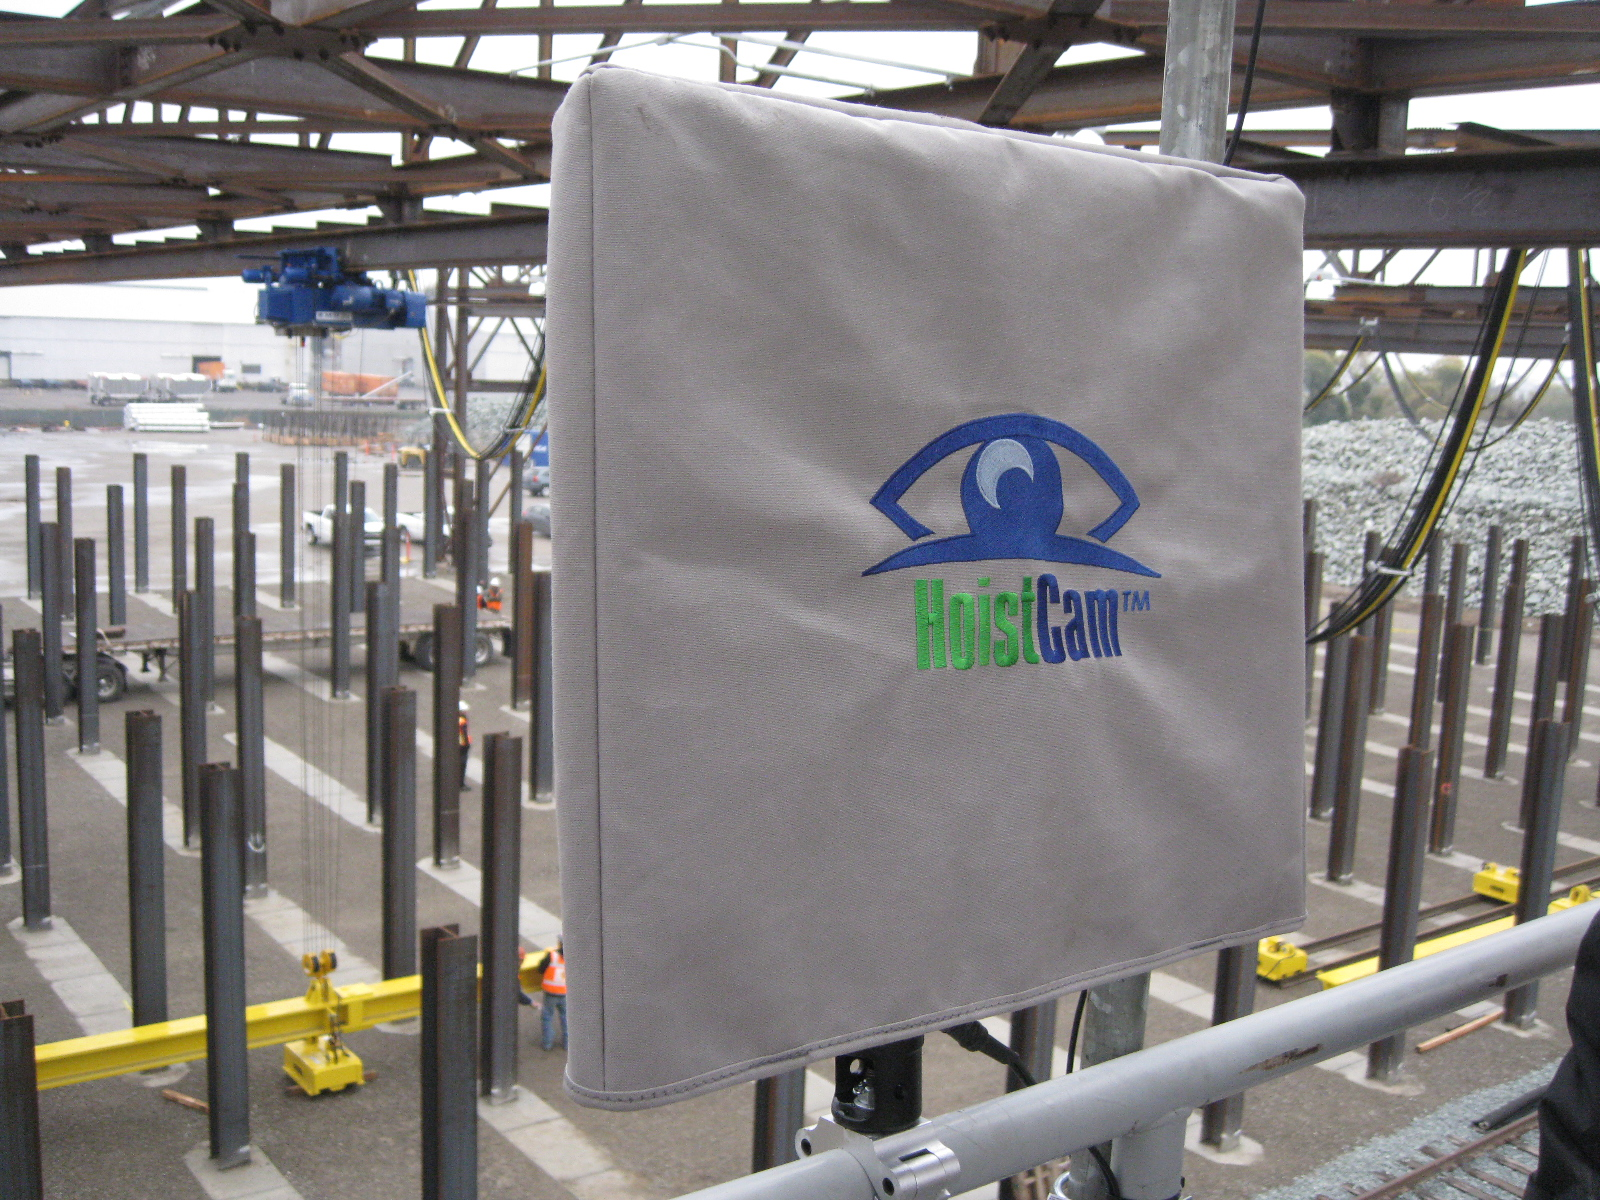 Outdoor Protective Cover For Hoistcam Monitor Wireless